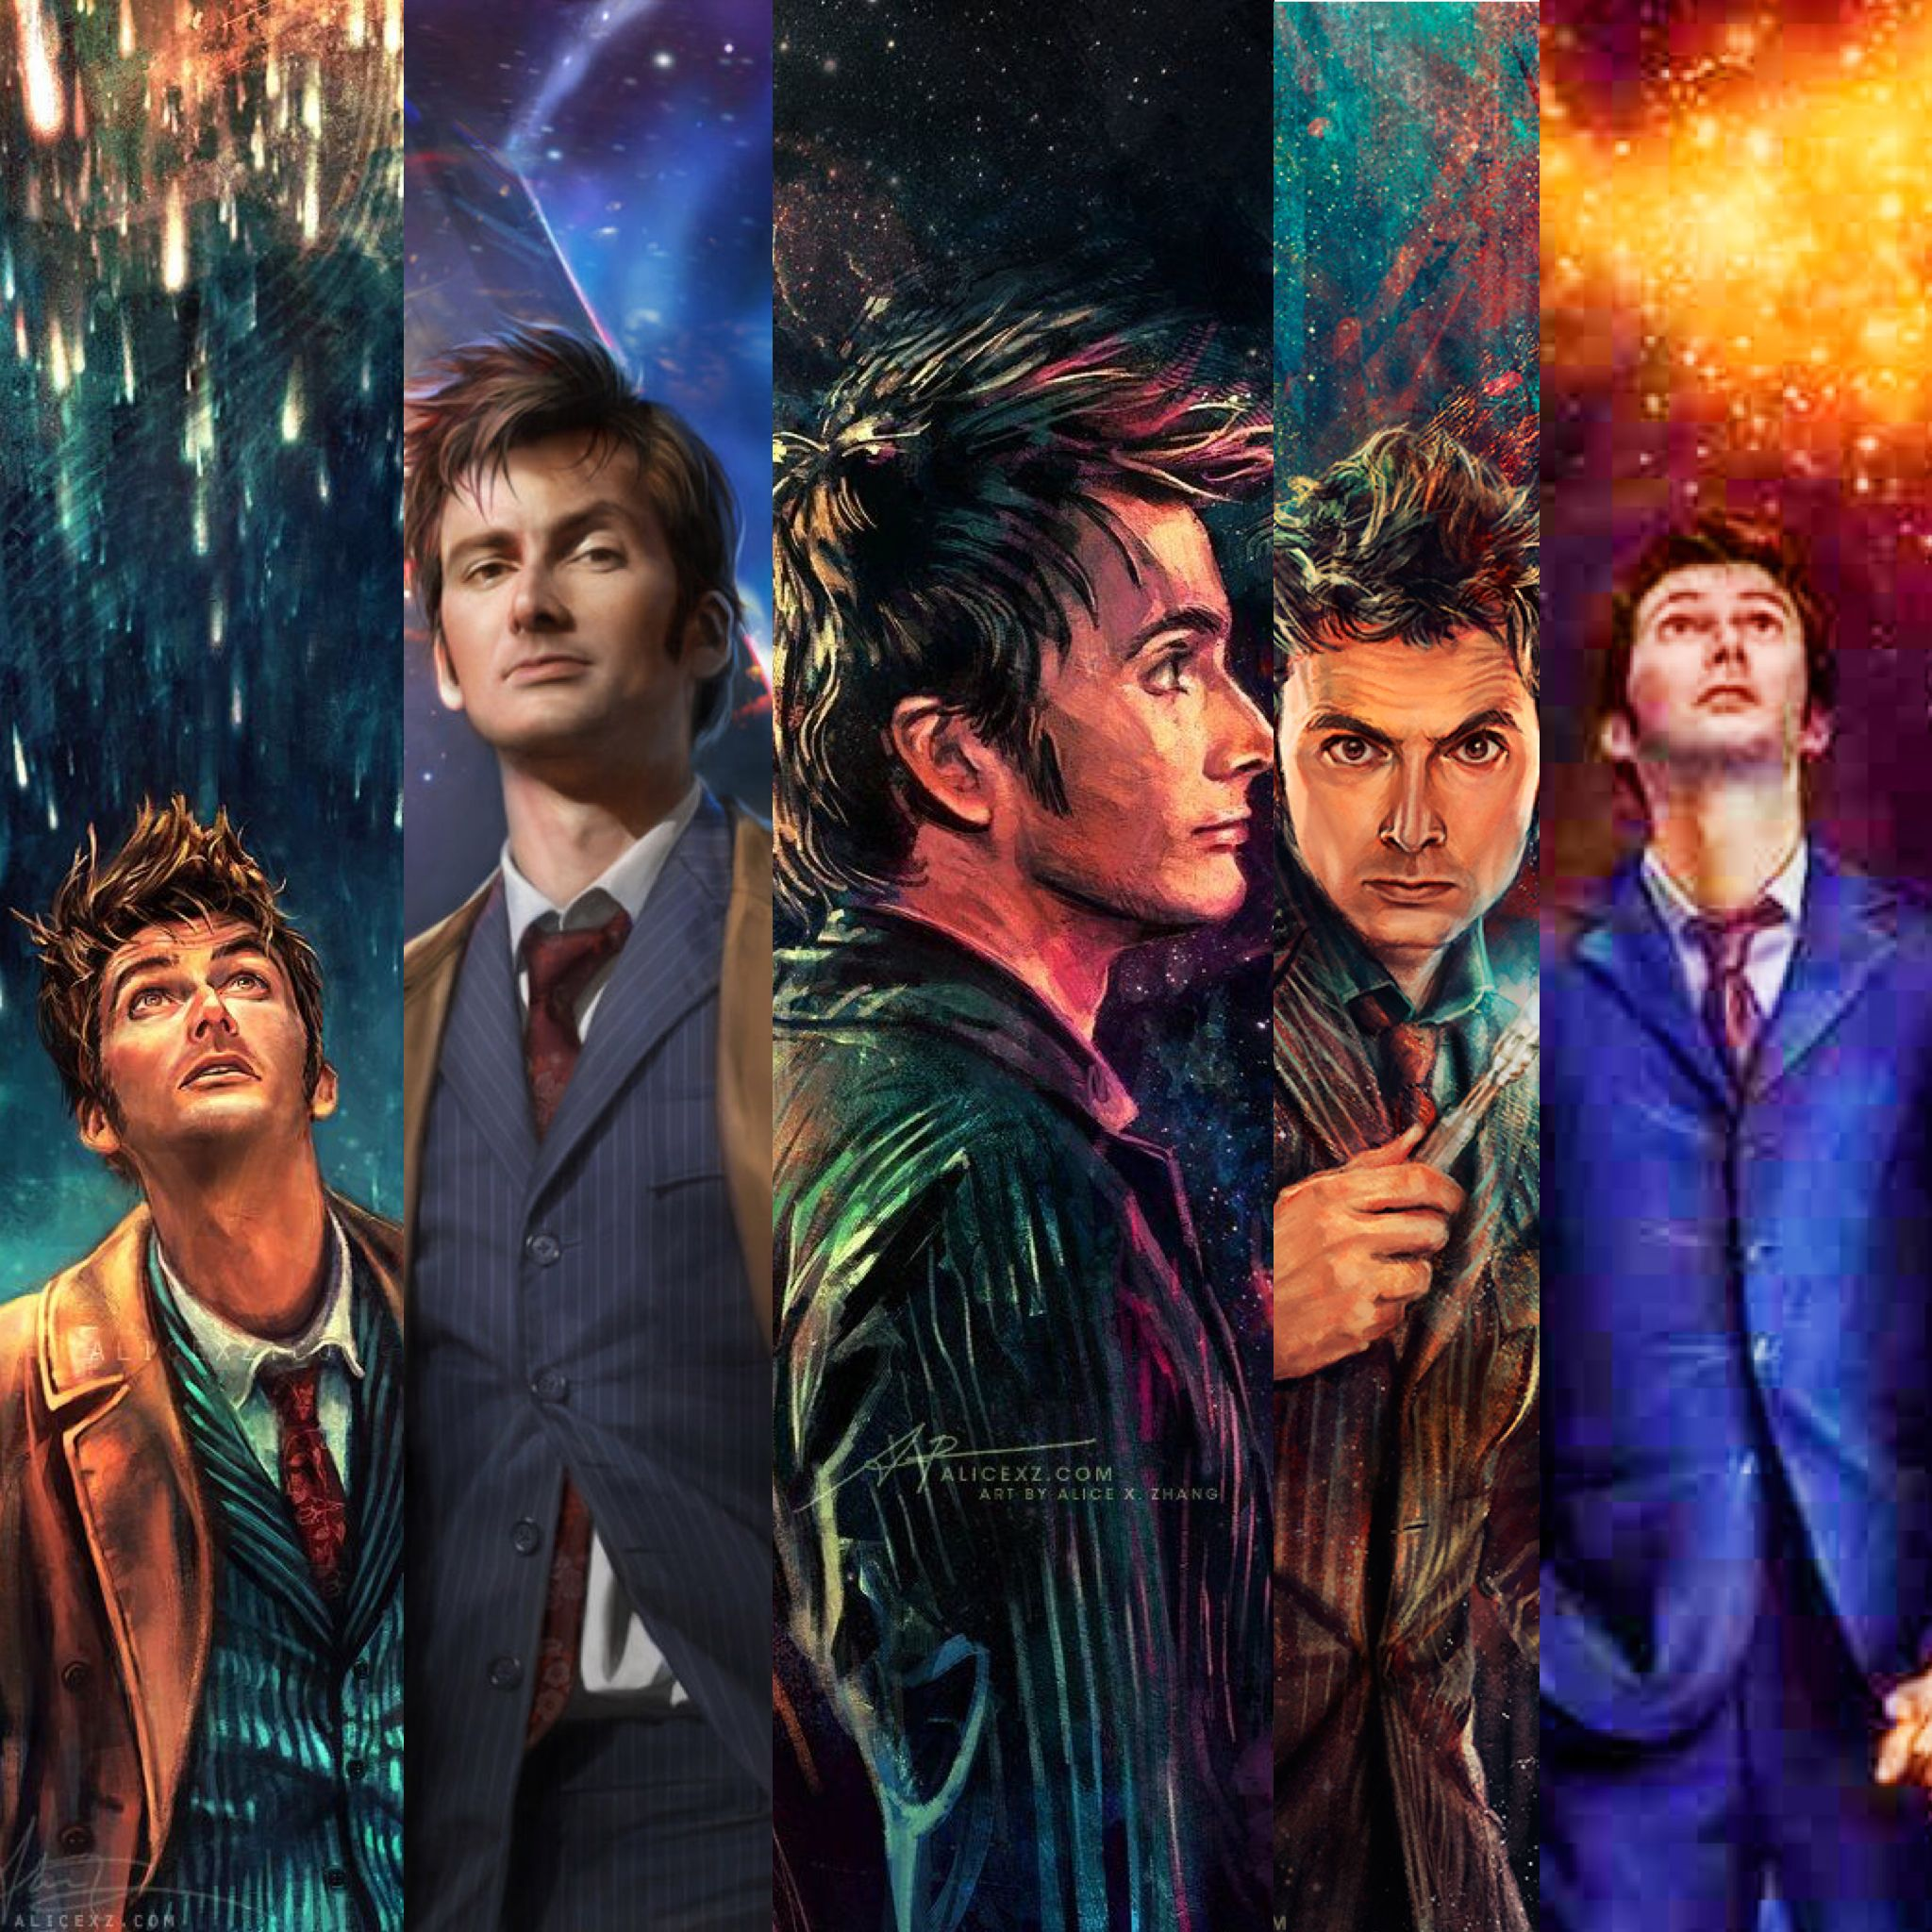 Pin by 𝕄𝕒𝕕𝕕𝕚𝕖 𝔾𝕣𝕖𝕪 on Doctor Who (With images) Doctor